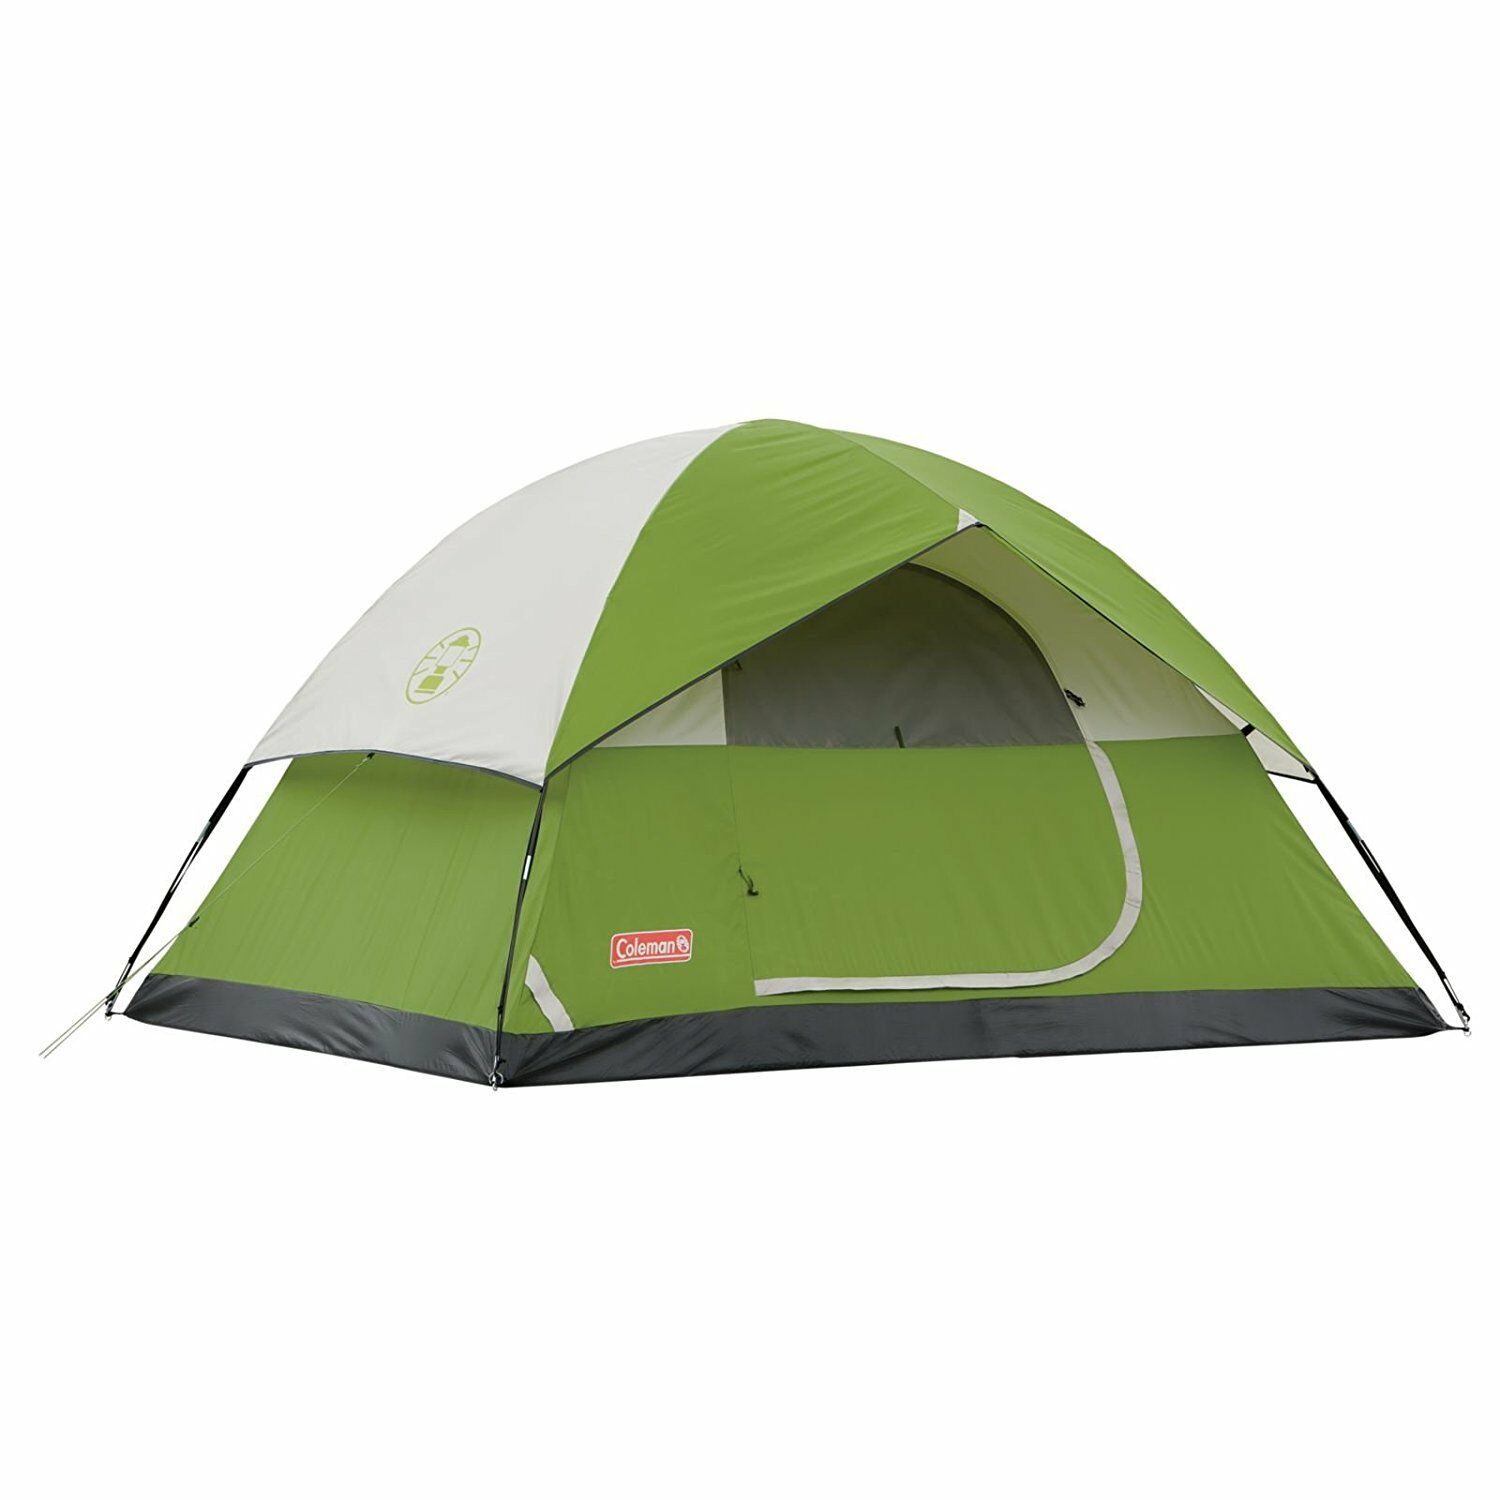 Coleman 2 Person Sundome Tent USA Polyester Camping  Fishing Hunting Tent Canopy  10 days return